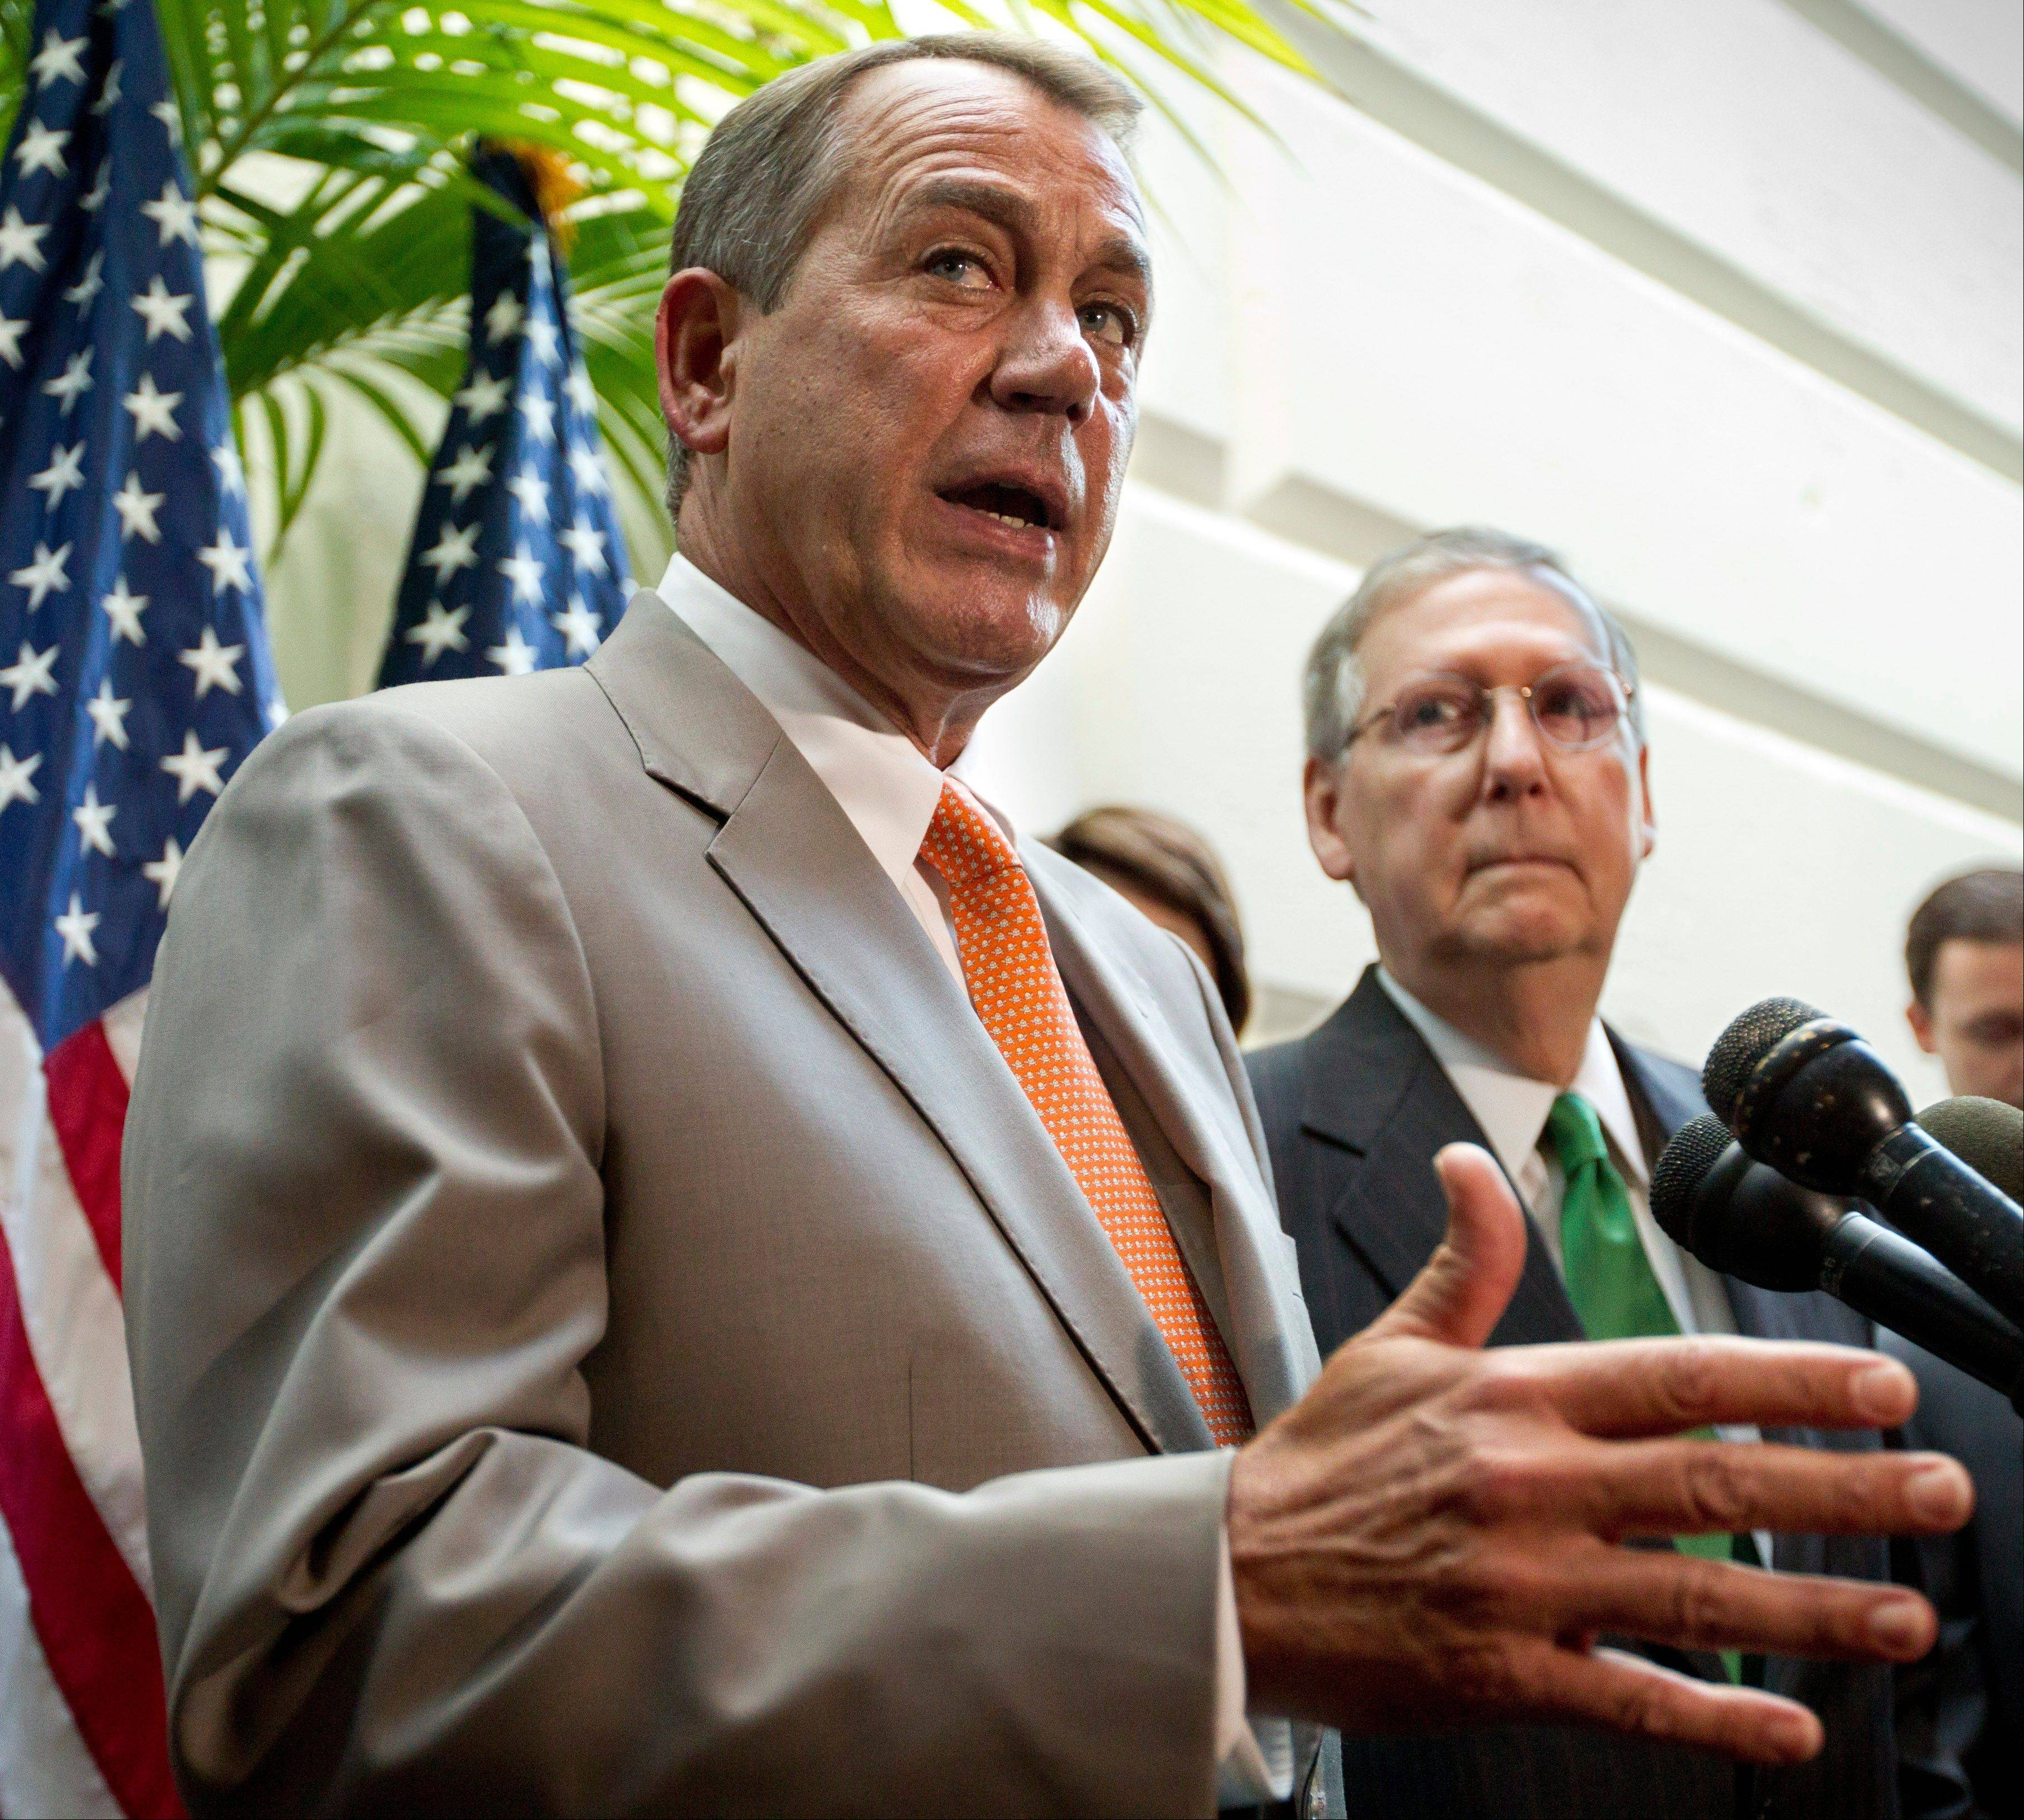 House Speaker John Boehner, seen here accompanied by Senate Minority Leader Mitch McConnell, right, admitted Monday that failing to lift the so-called debt ceiling would have bad consequences.